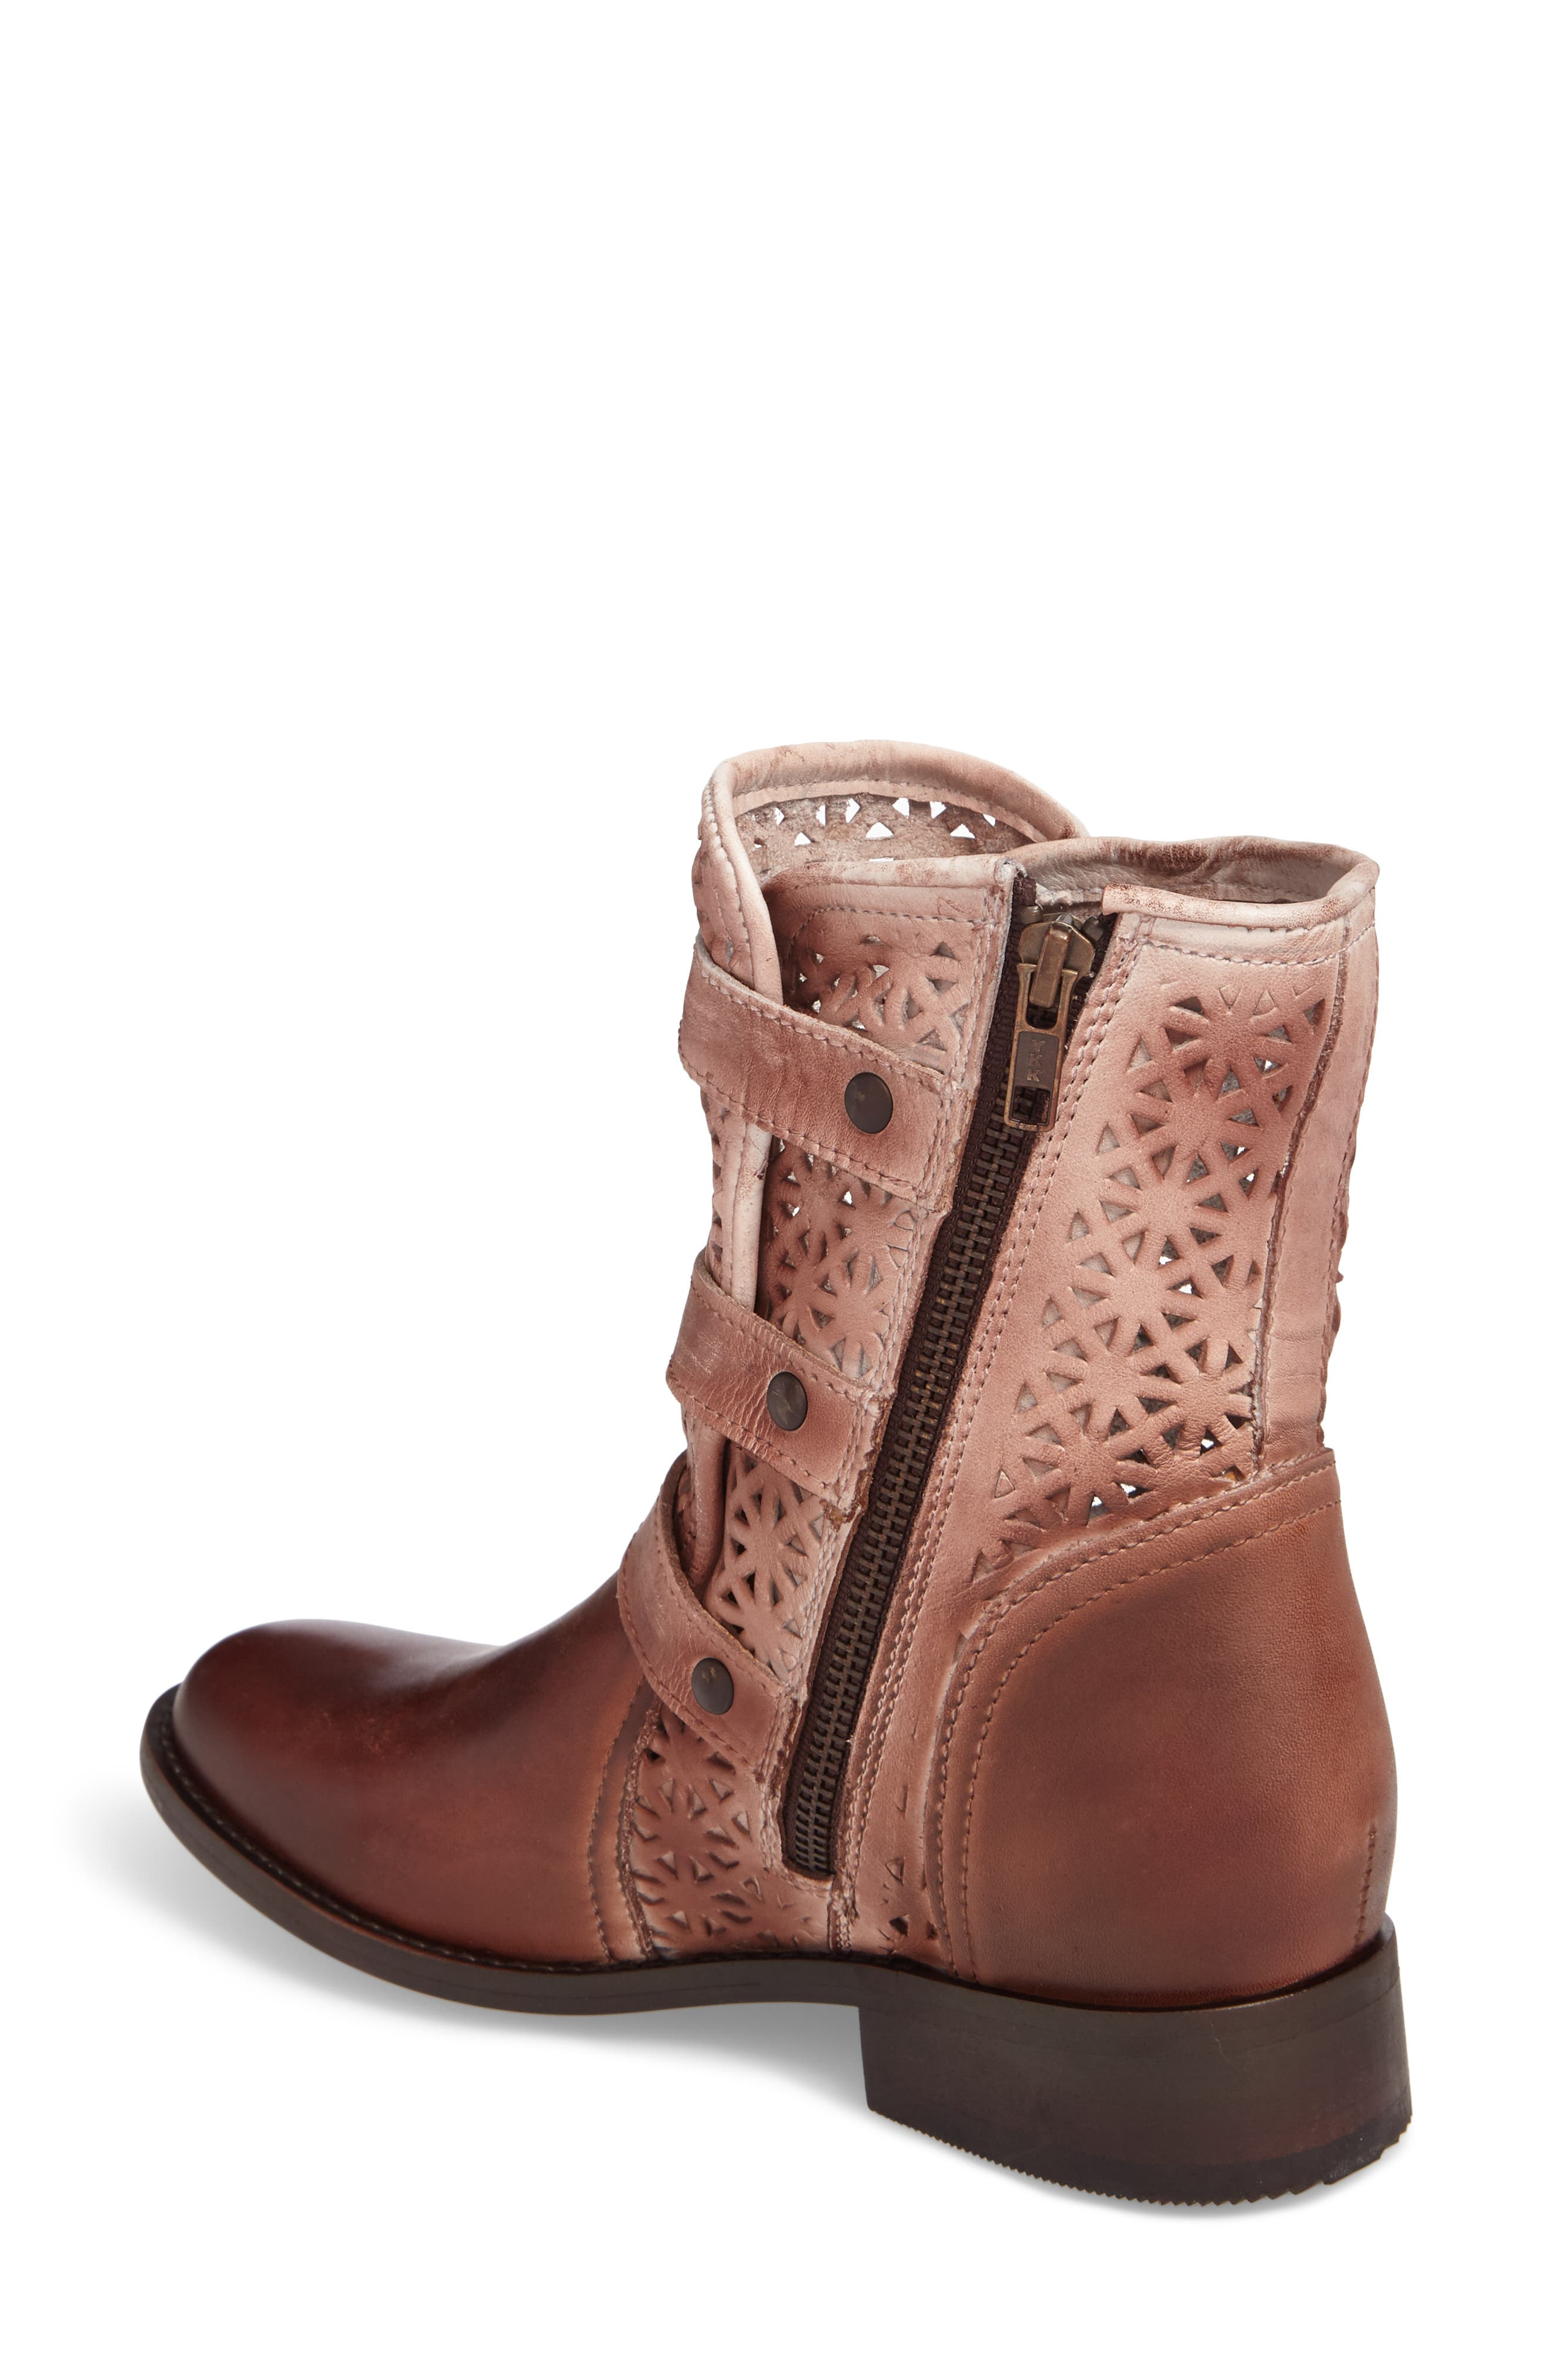 Annex Bootie,                             Alternate thumbnail 2, color,                             Brown Leather